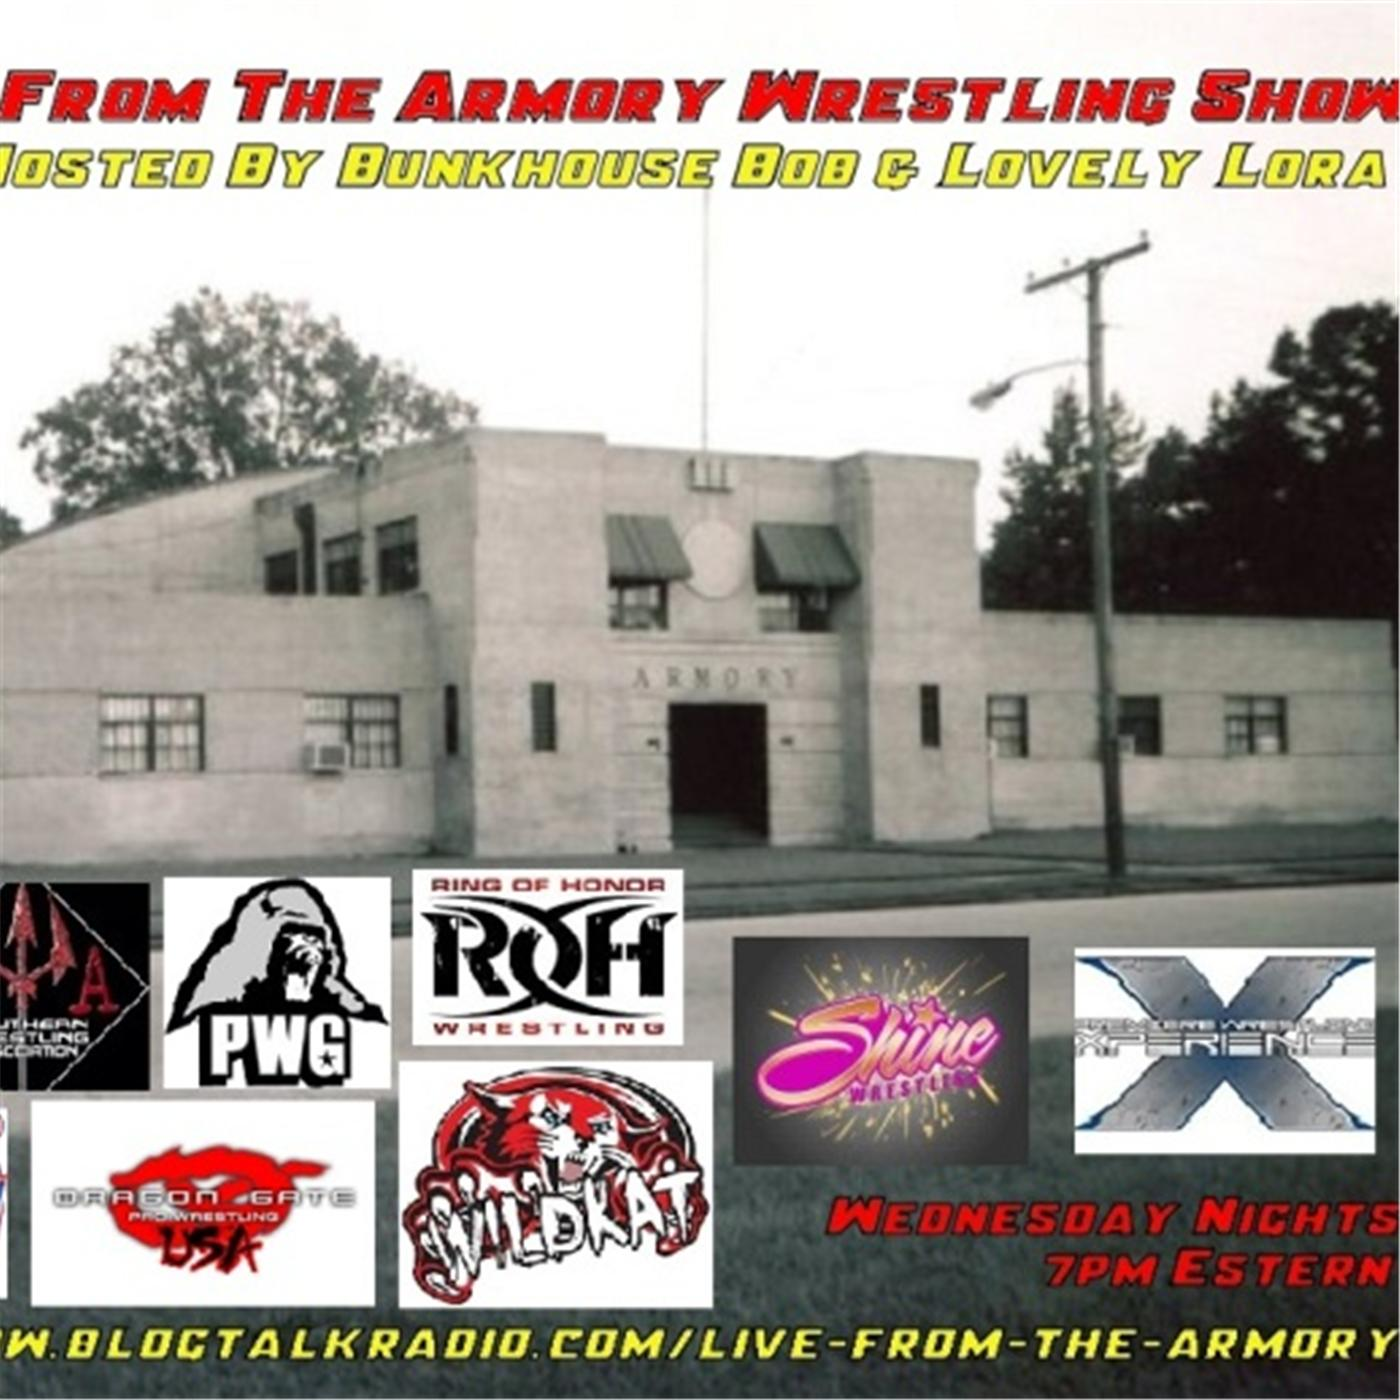 LIVE! From The Armory Wrestling Show